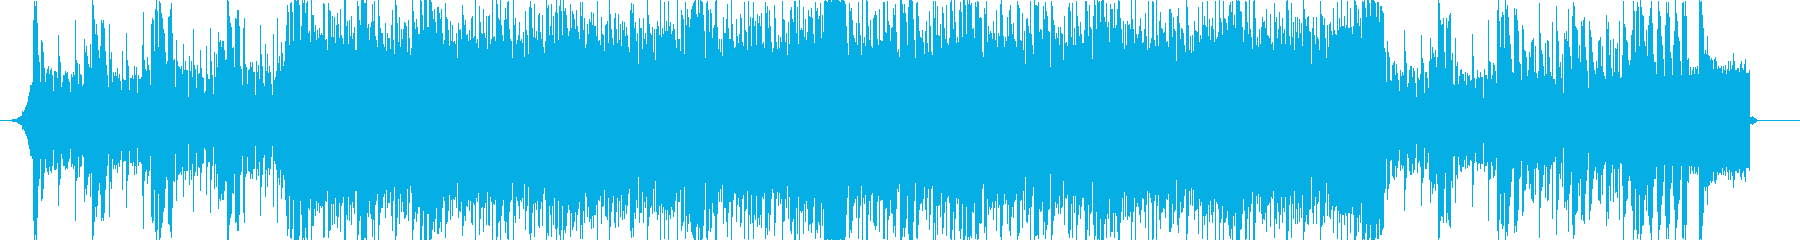 It's slapstick, but it'll be fun's reproduced waveform